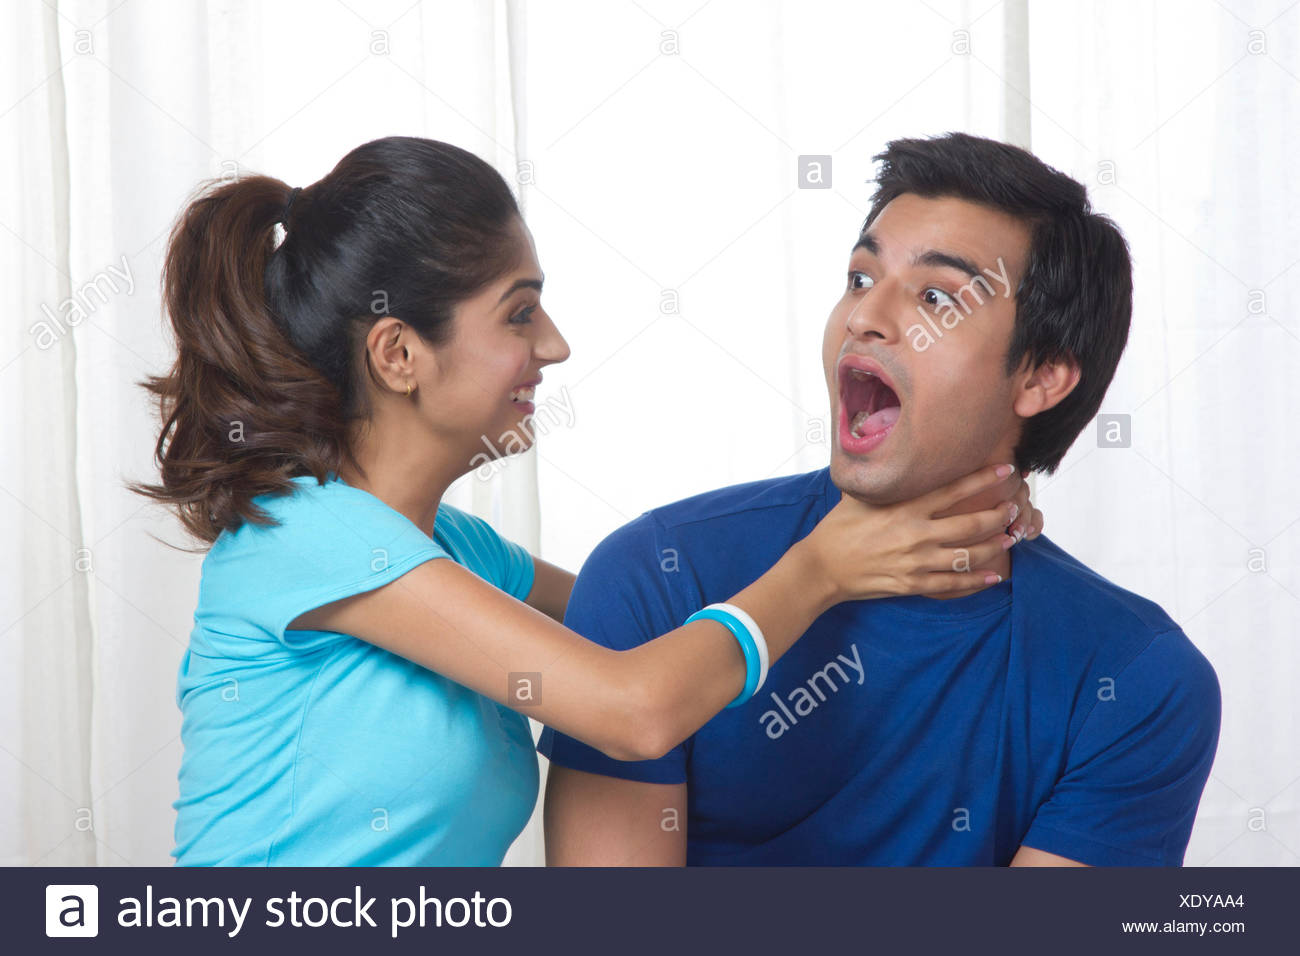 Playful young woman gripping man's neck at home - Stock Image